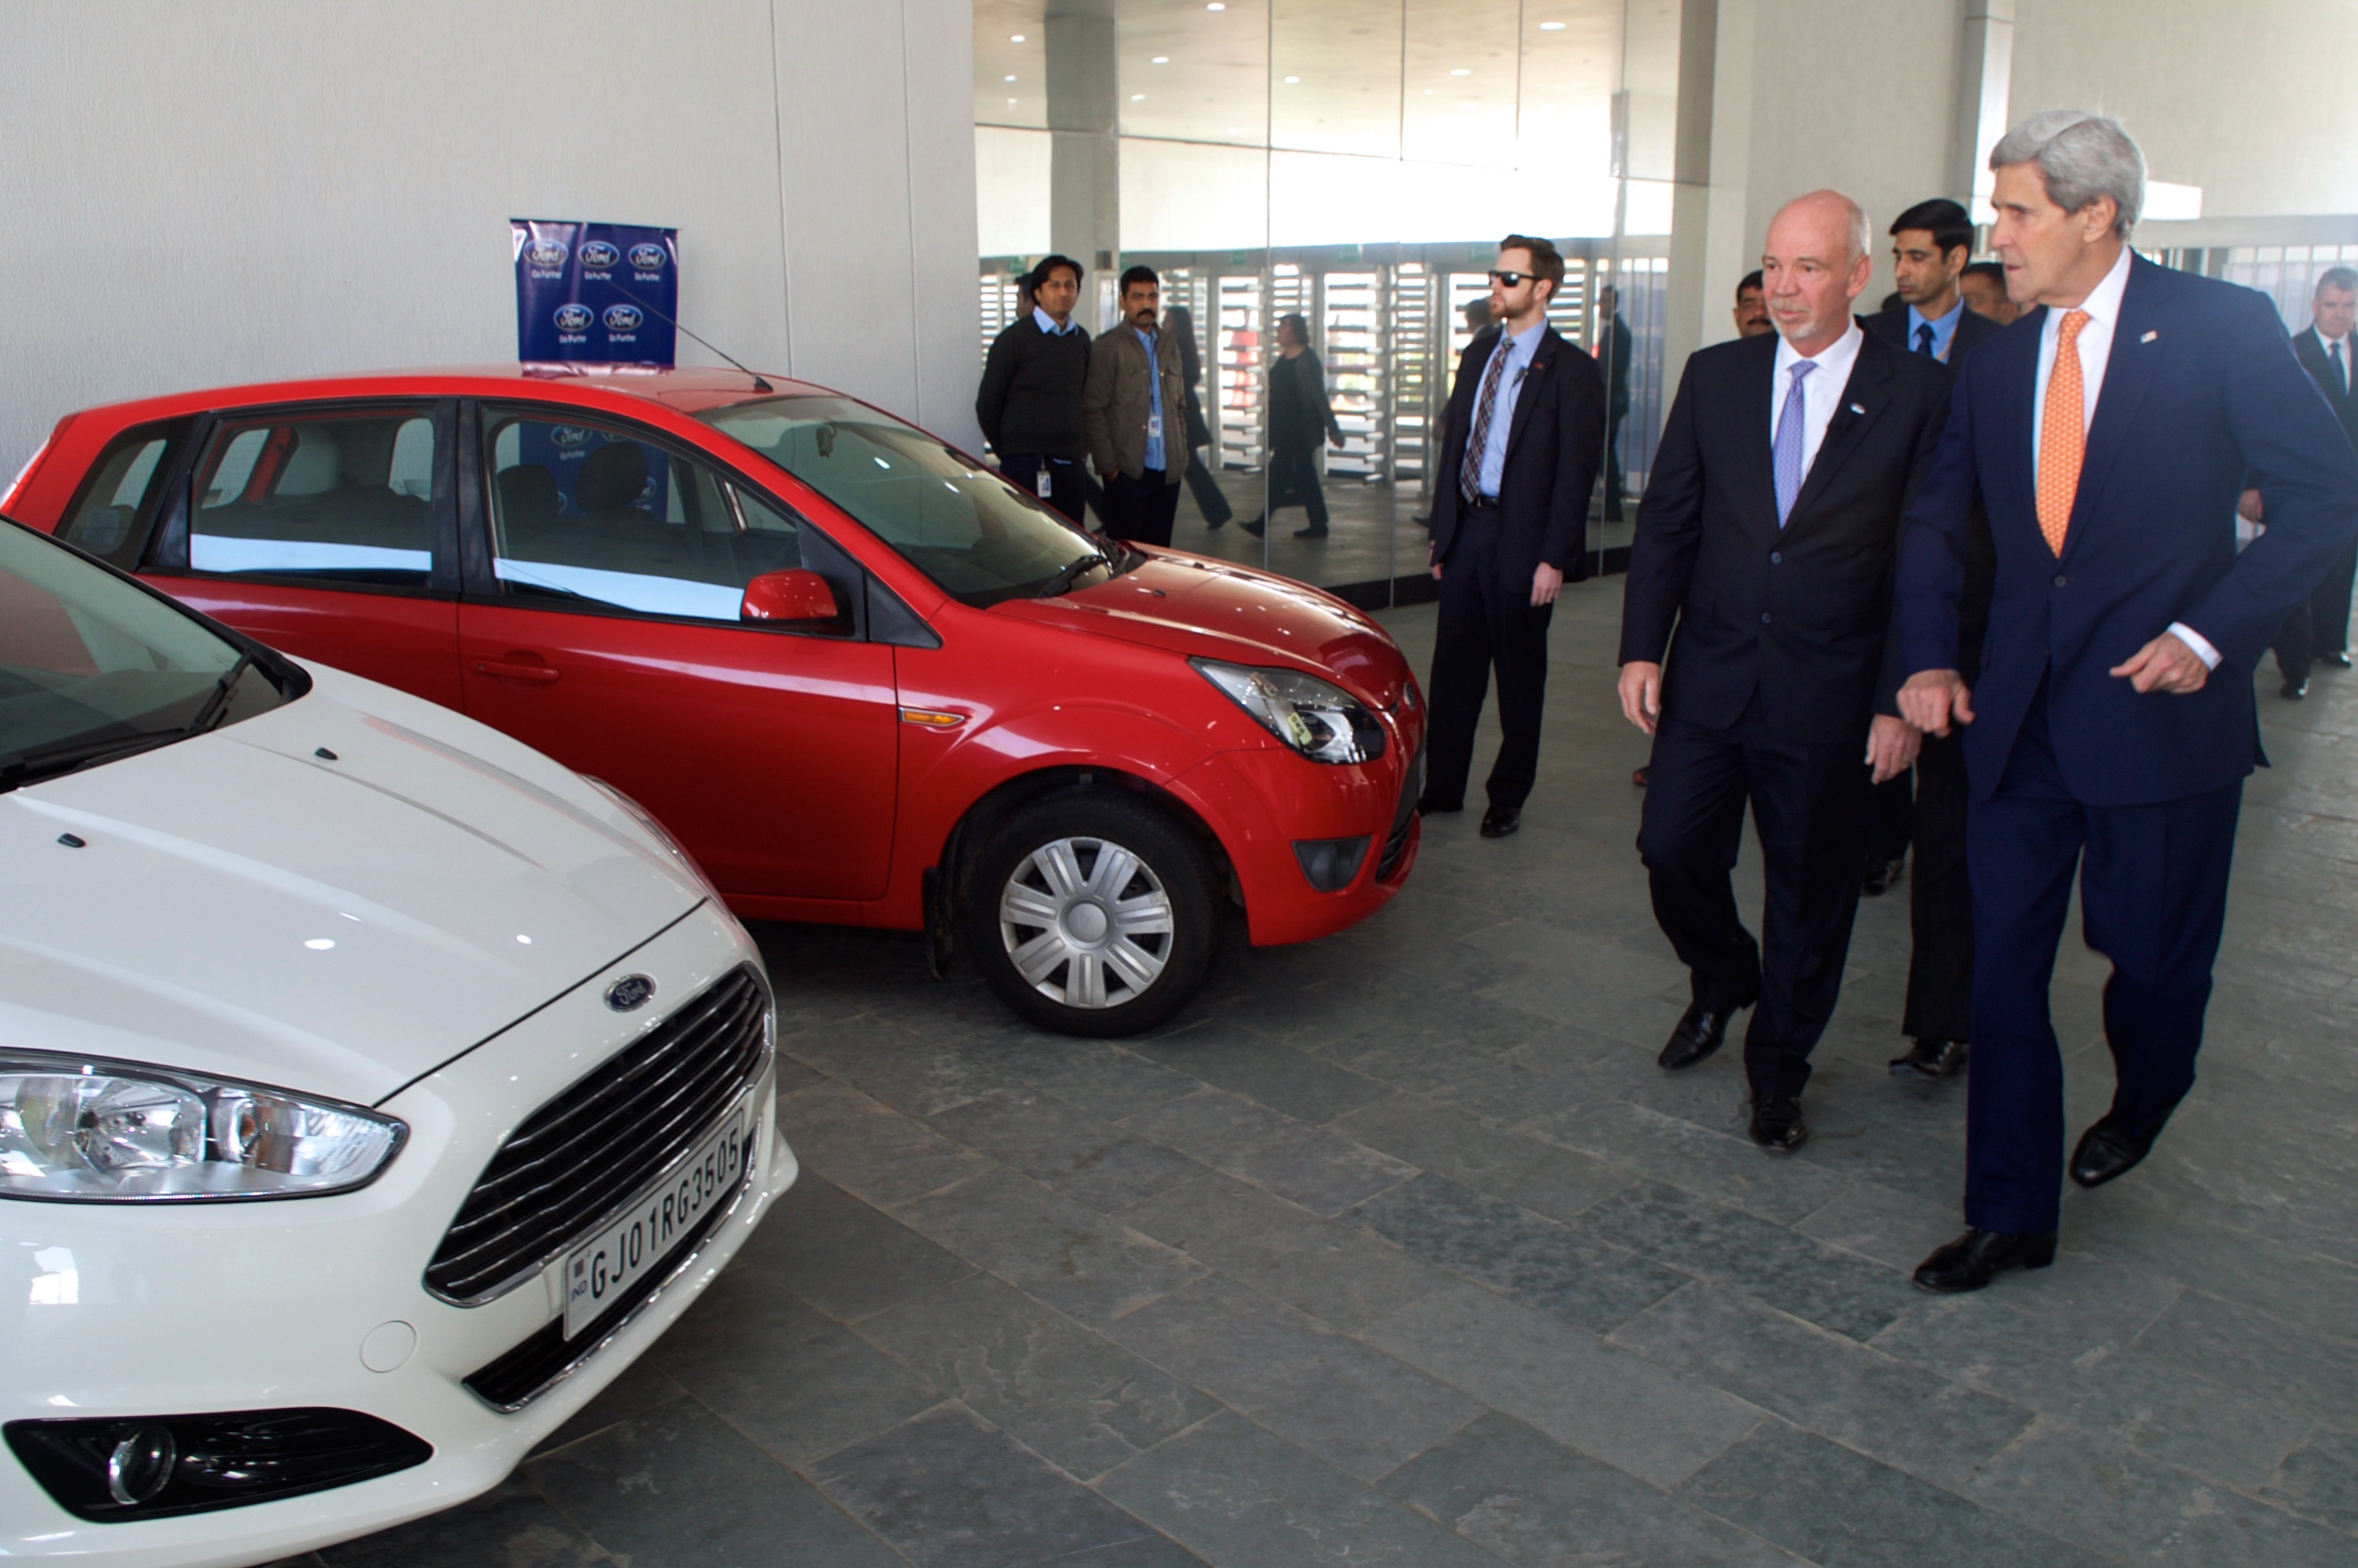 ford president car. file:ford india president shows secretary kerry car models as he tours new factory amid ford